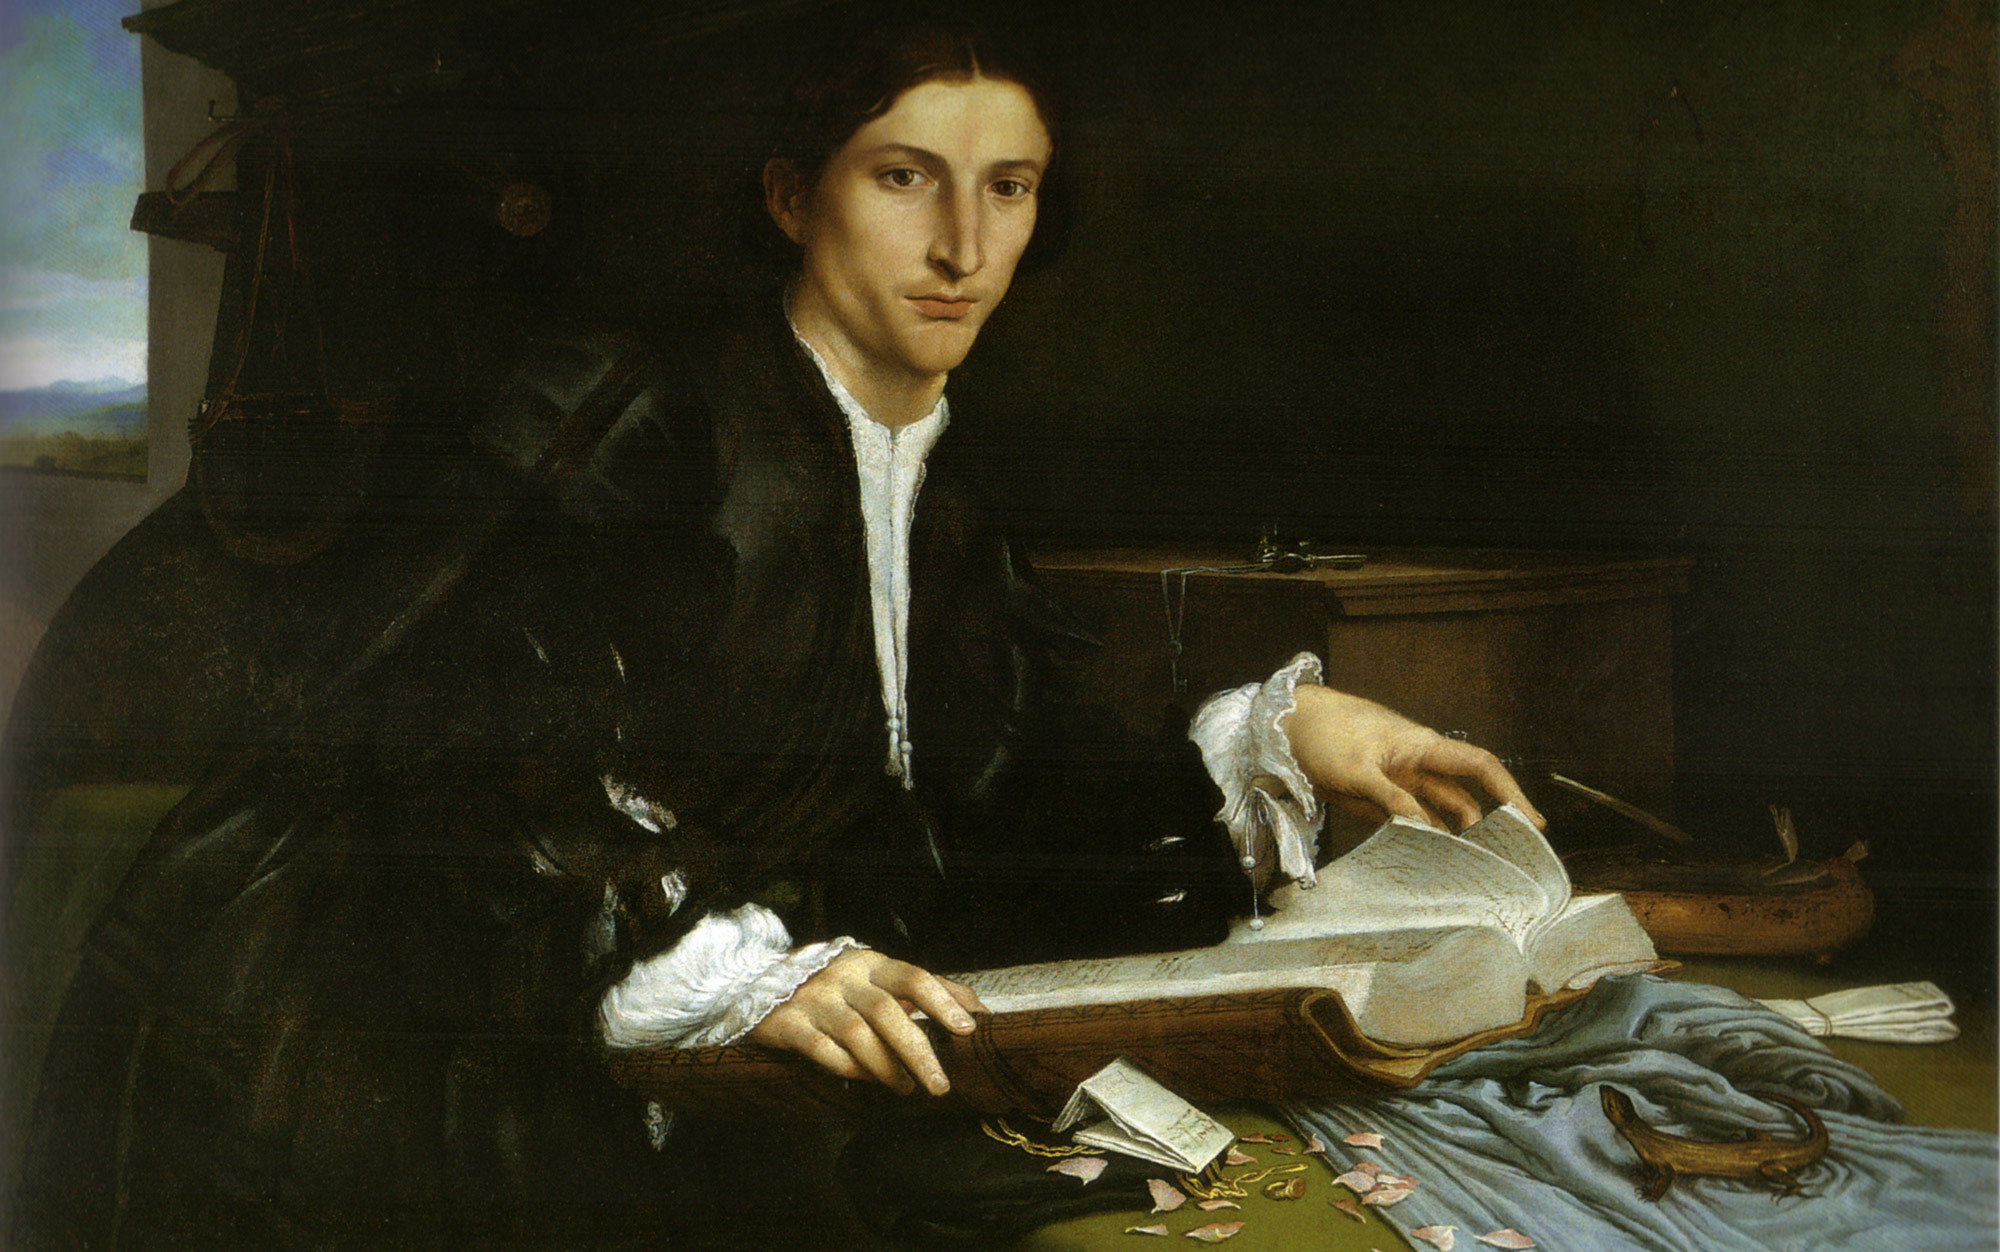 Portrait of a Gentleman in his Study, Lorenzo Lotto